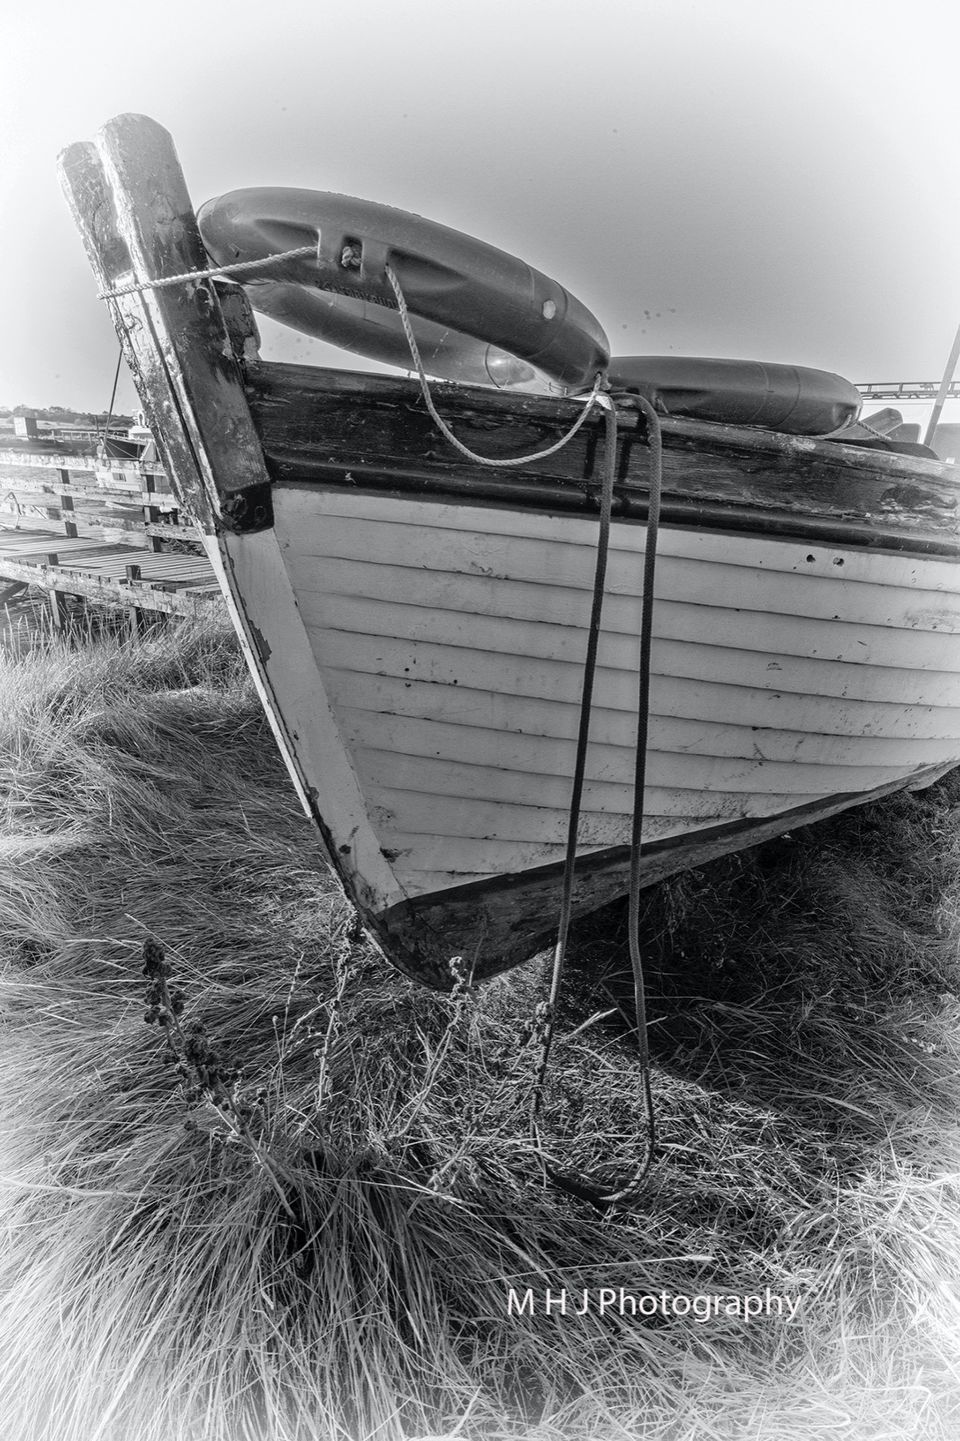 BW - Boat front